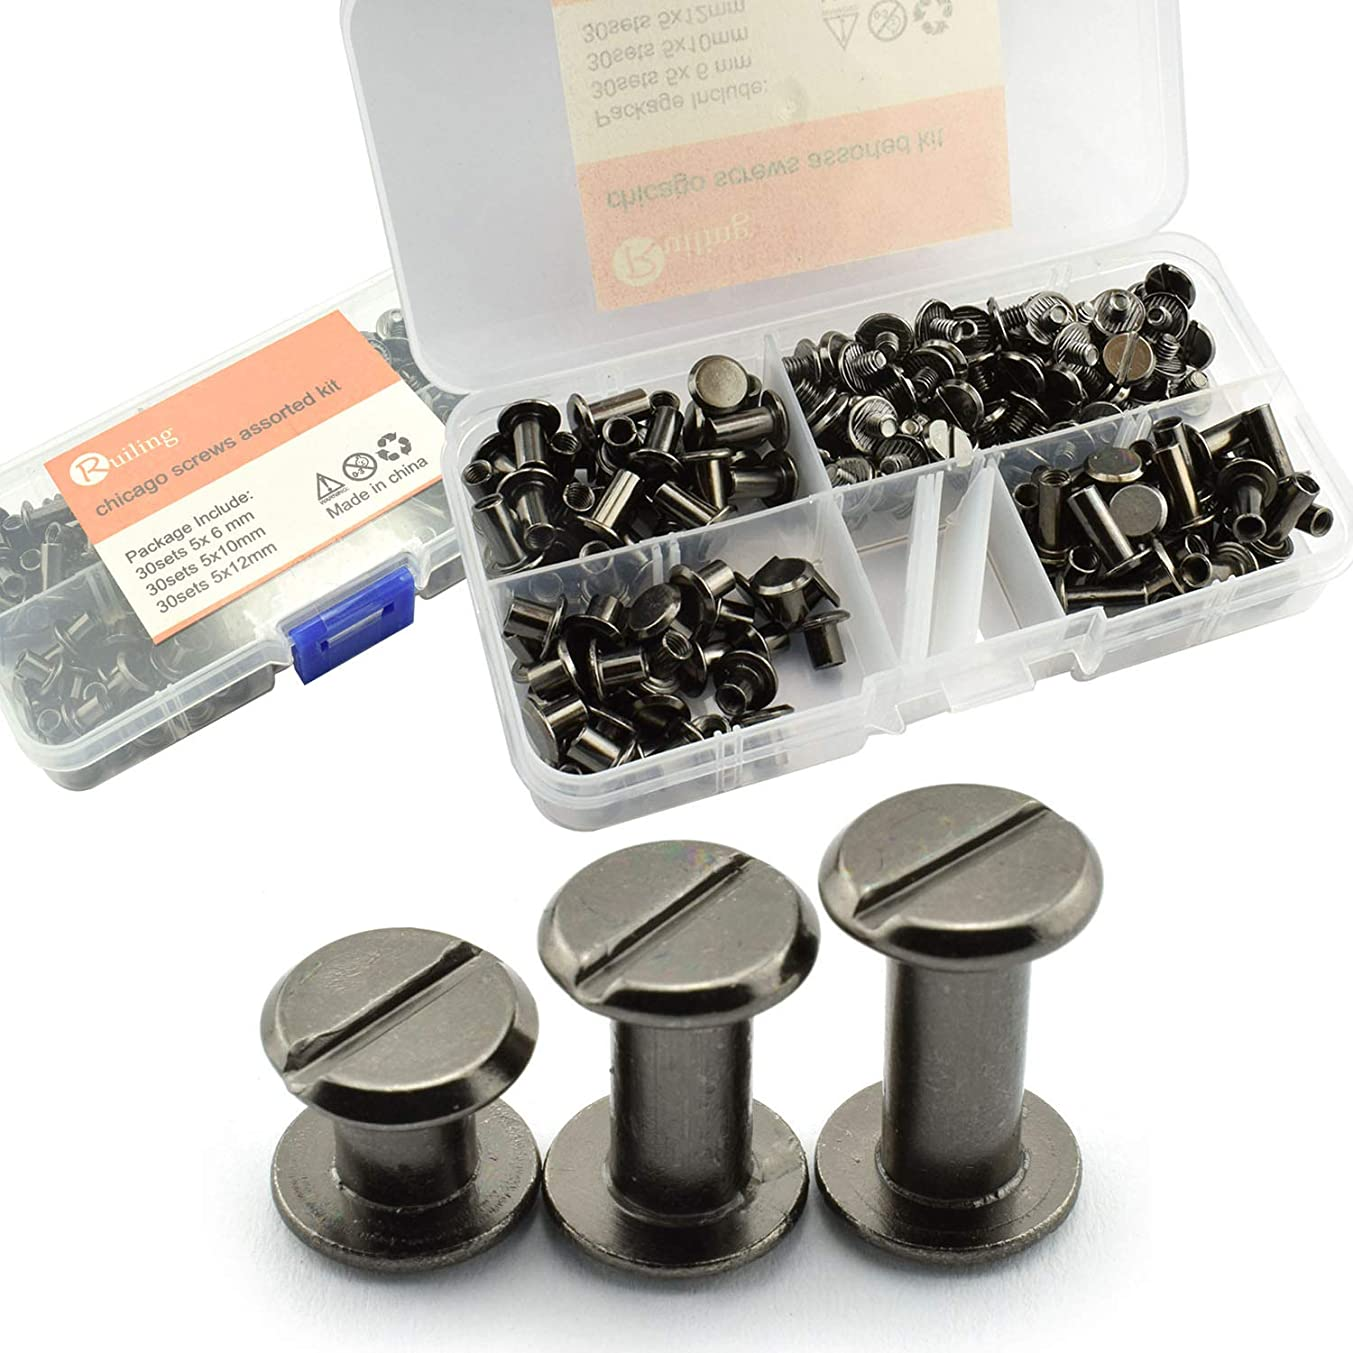 RuiLing 90 Sets Black Chicago Screws Assorted Kit Screw Posts Metal Accessories Nail Rivet Chicago Button for DIY Leather Decoration Bookbinding Slotted Flat Head Stud Screw 5x6/10/12mm